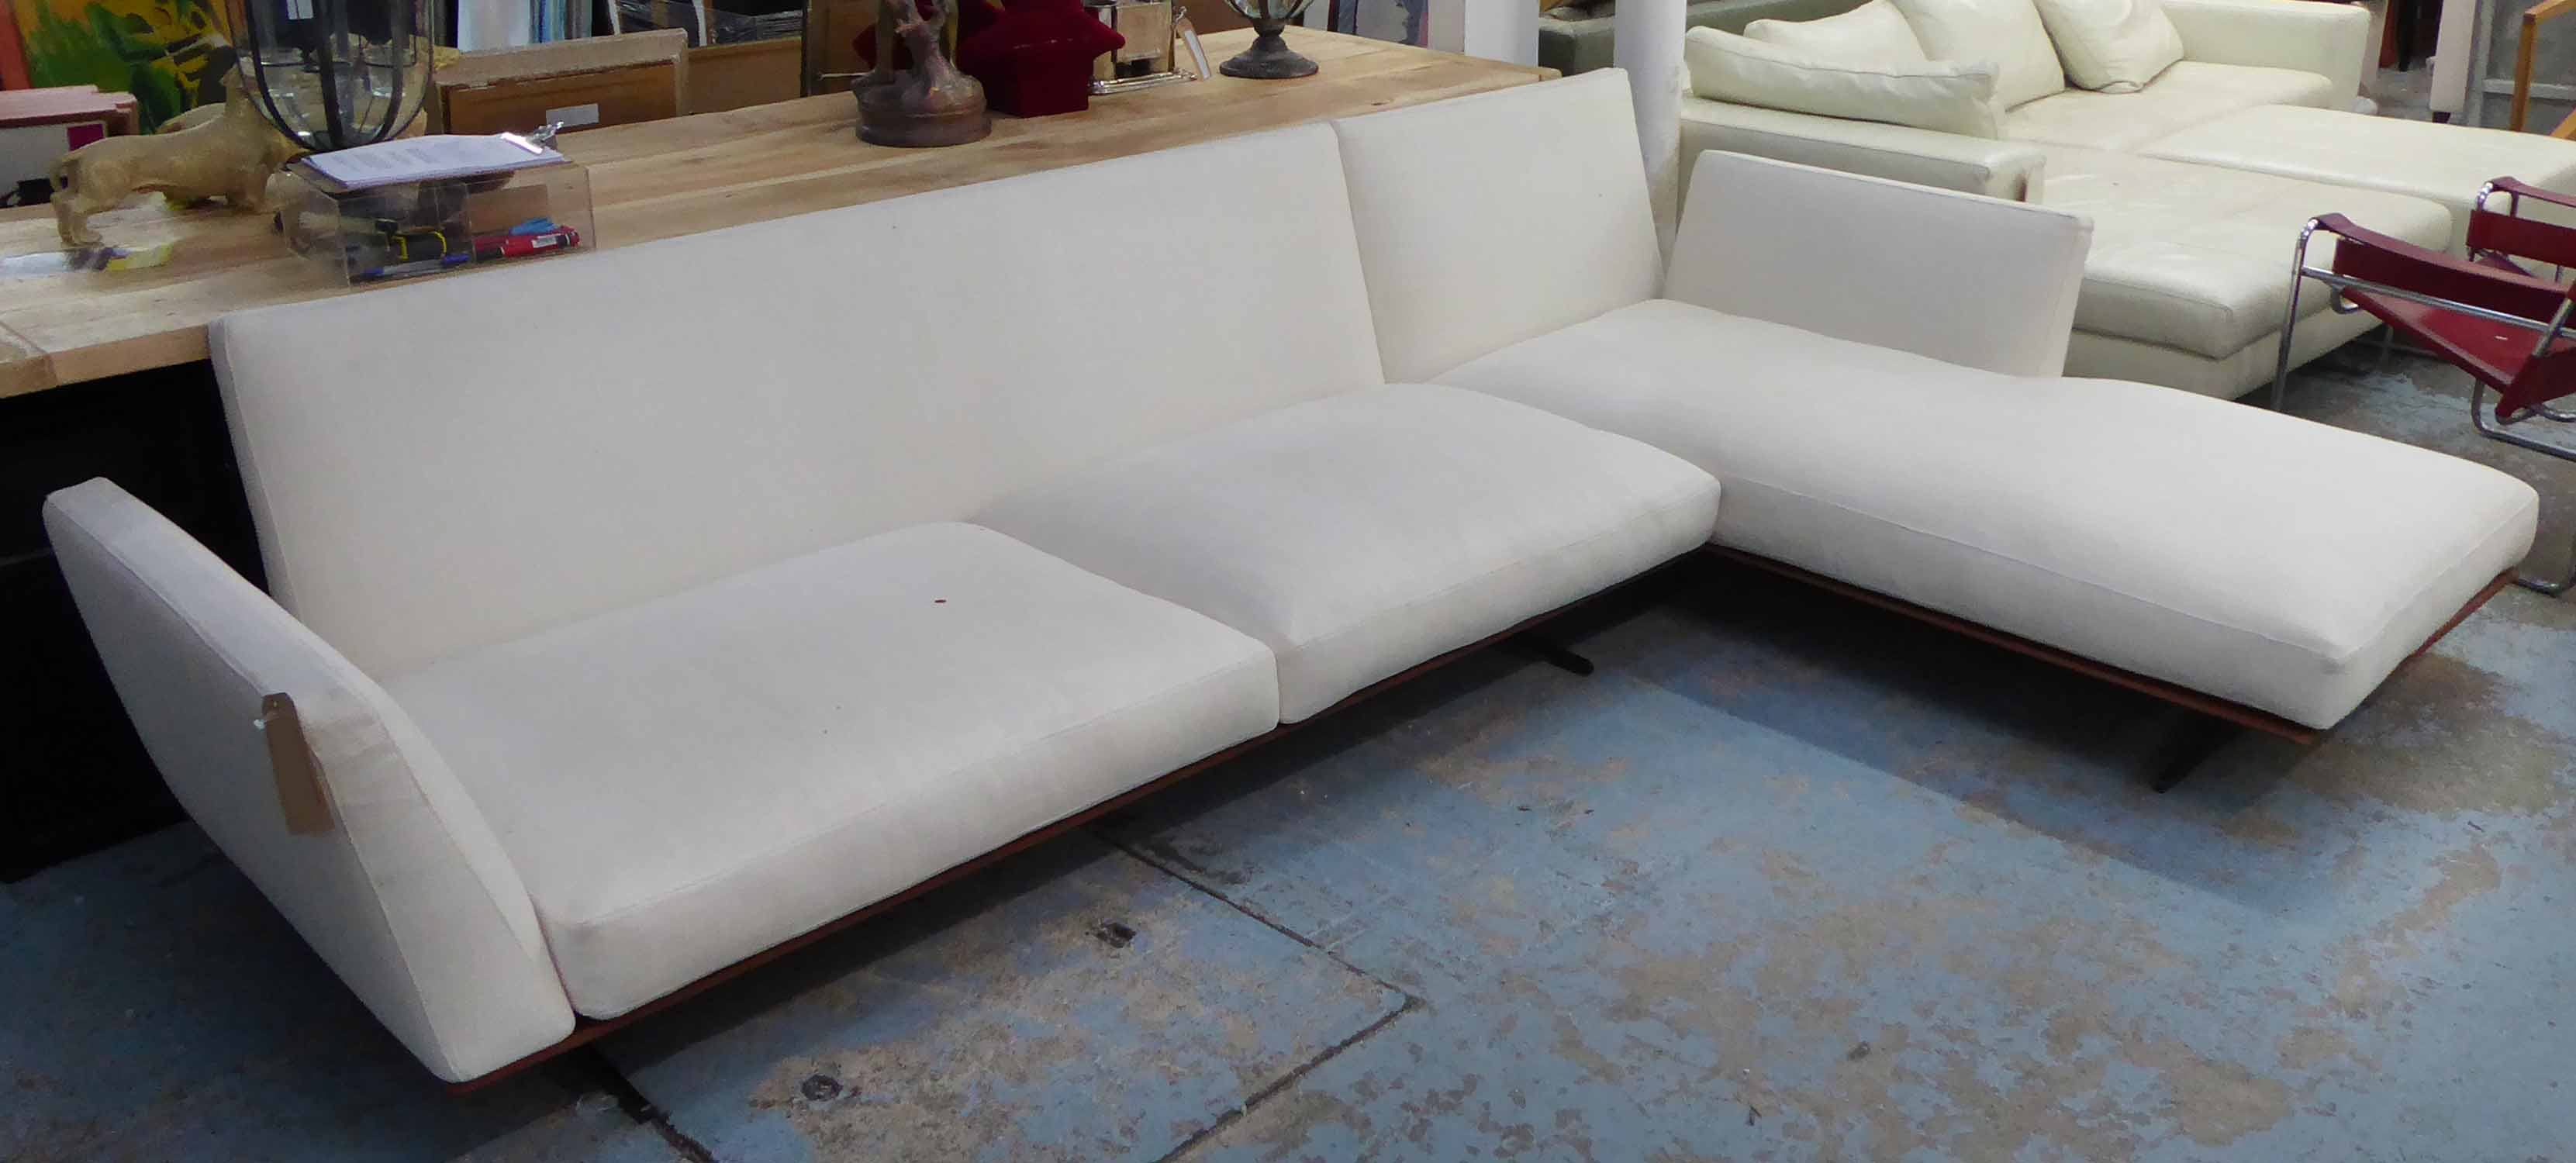 Lot 58 - CORNER SOFA, white woven fabric, by Flexform, approx.